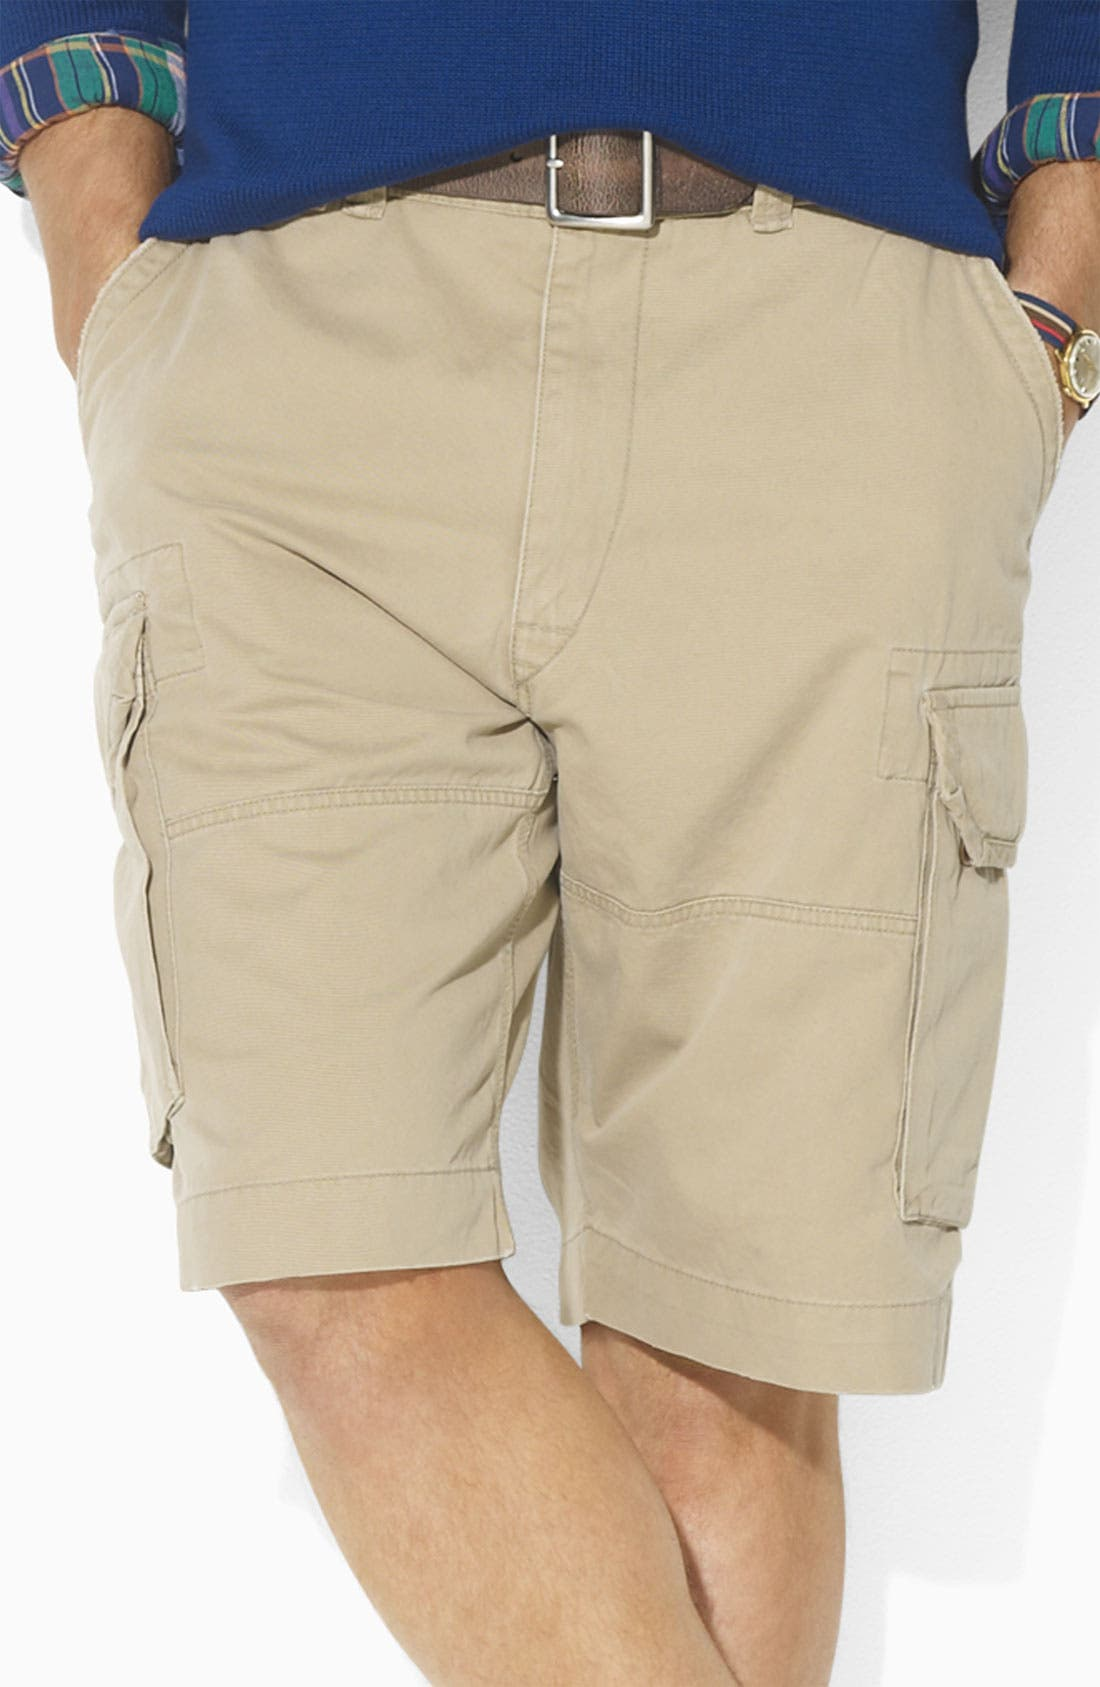 Main Image - Polo Ralph Lauren 'Gellar' Fatigue Cargo Shorts (Big & Tall)